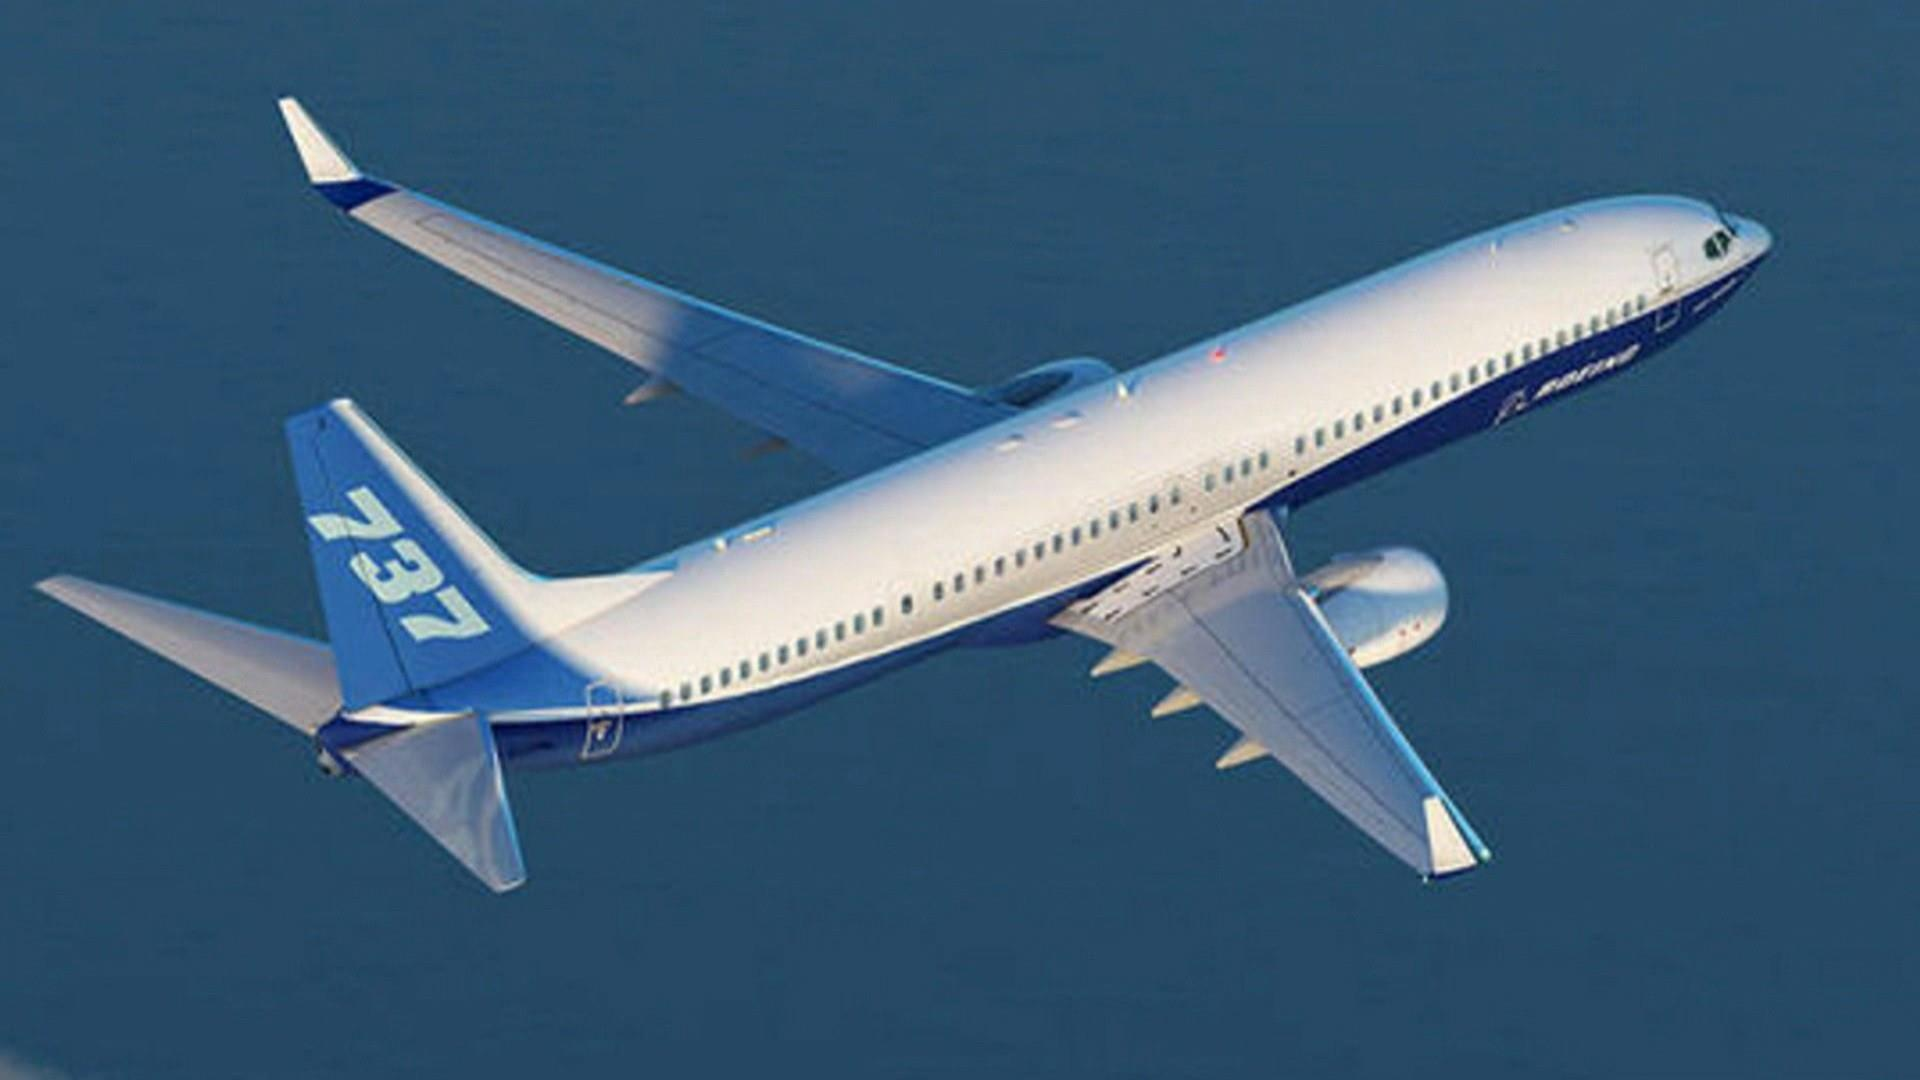 FAA finds potential flaw in Boeing 737 Max software updates